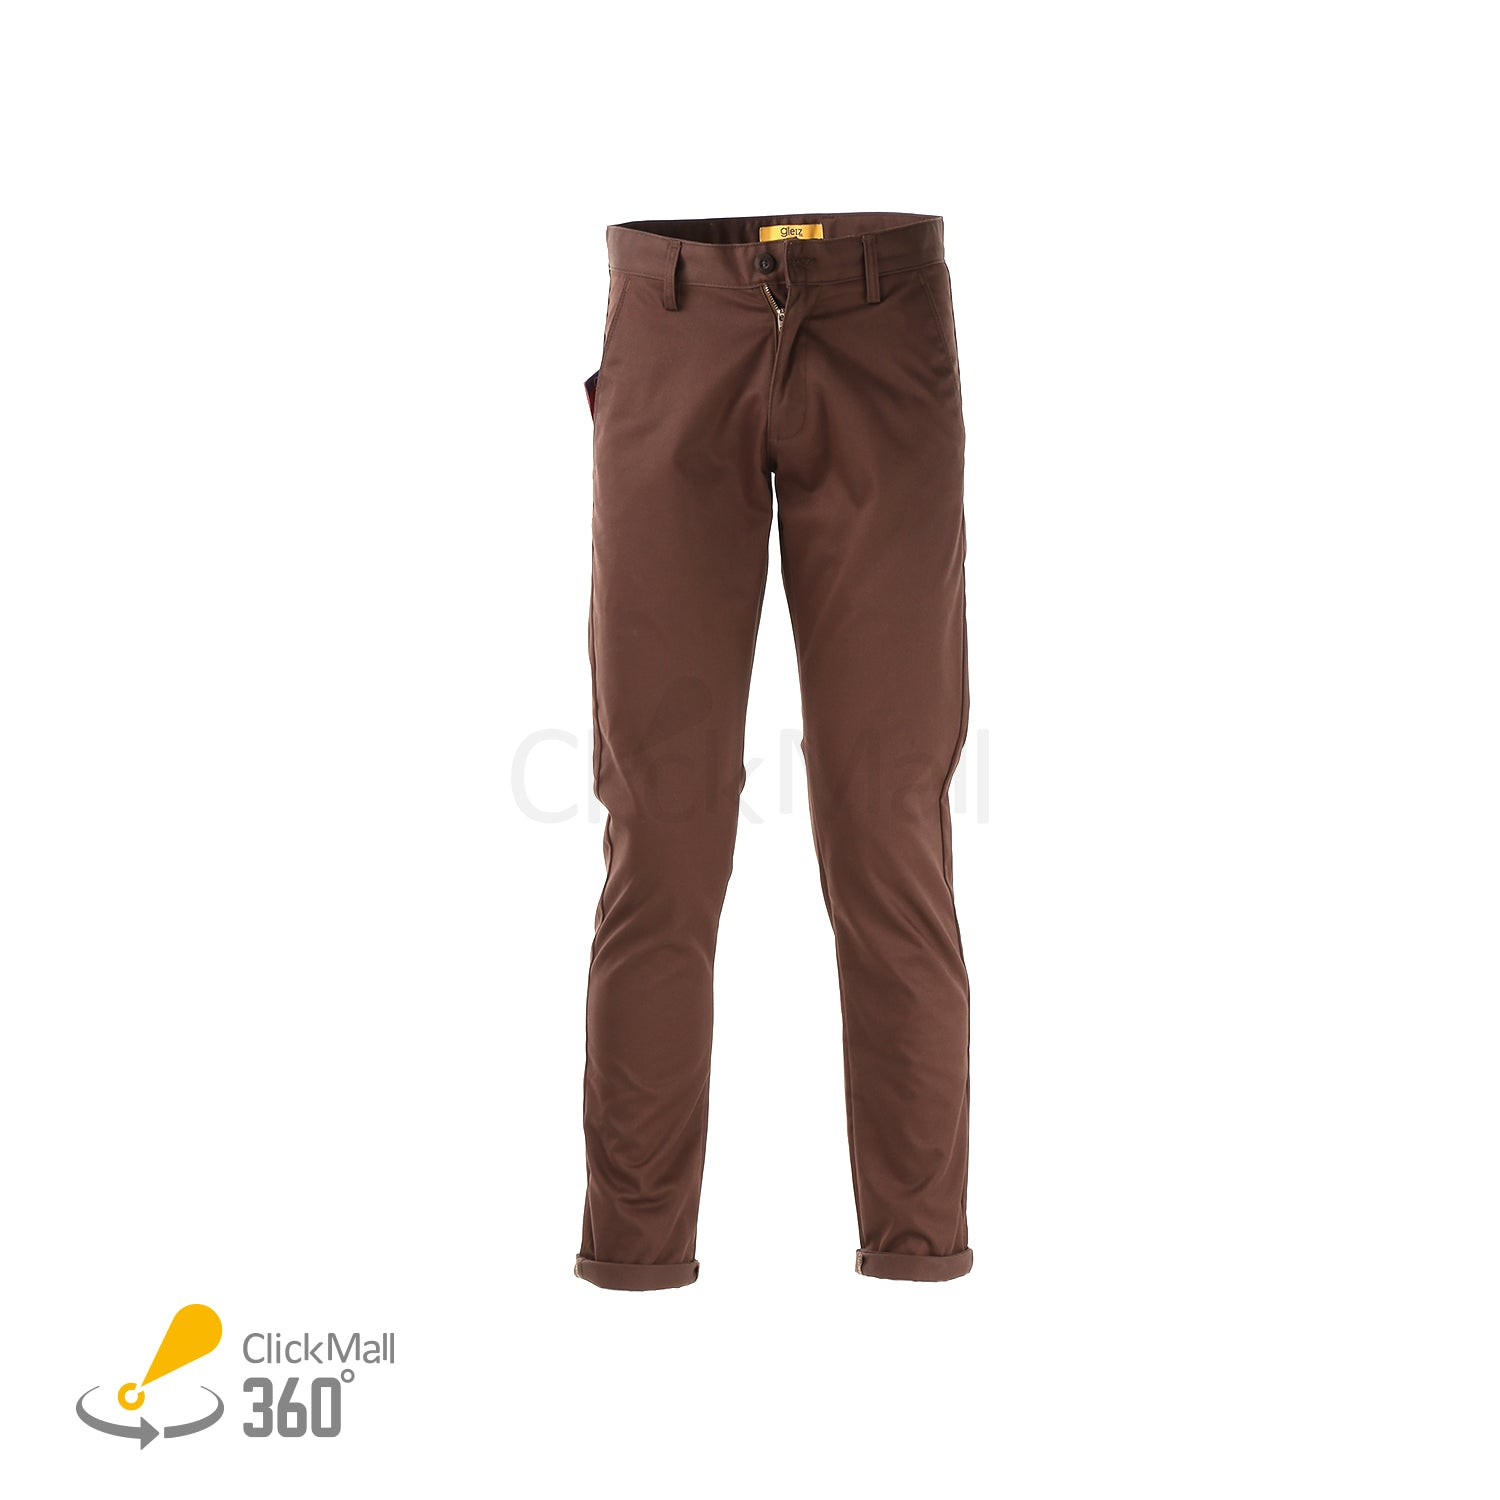 Gleiz Simple Twil - Chocolate Brown